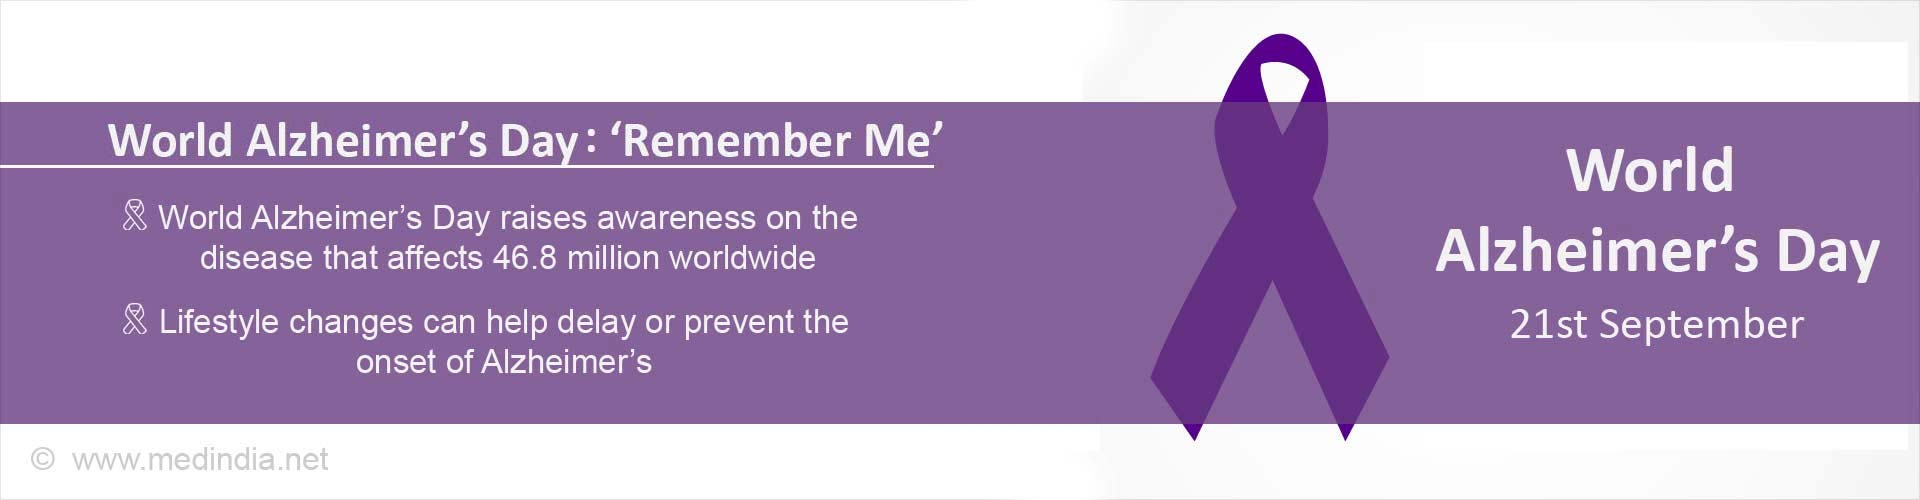 World Alzheimer's Day 2017: '˜Remember Me'